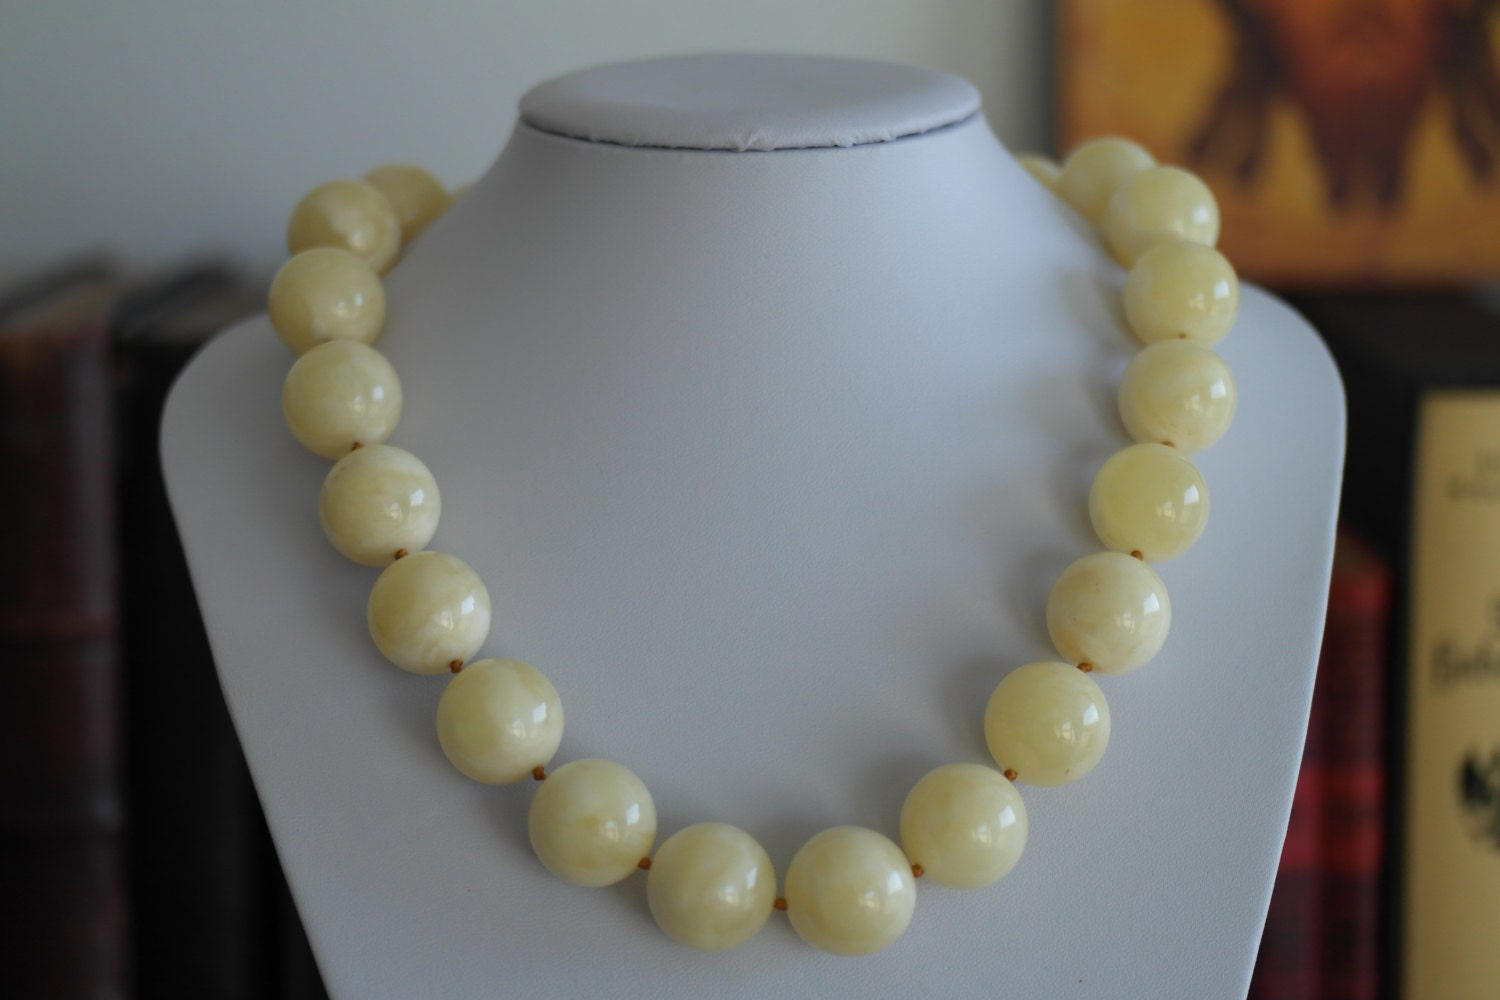 107 g Royal Milky White Baltic Amber bead necklace rare gift